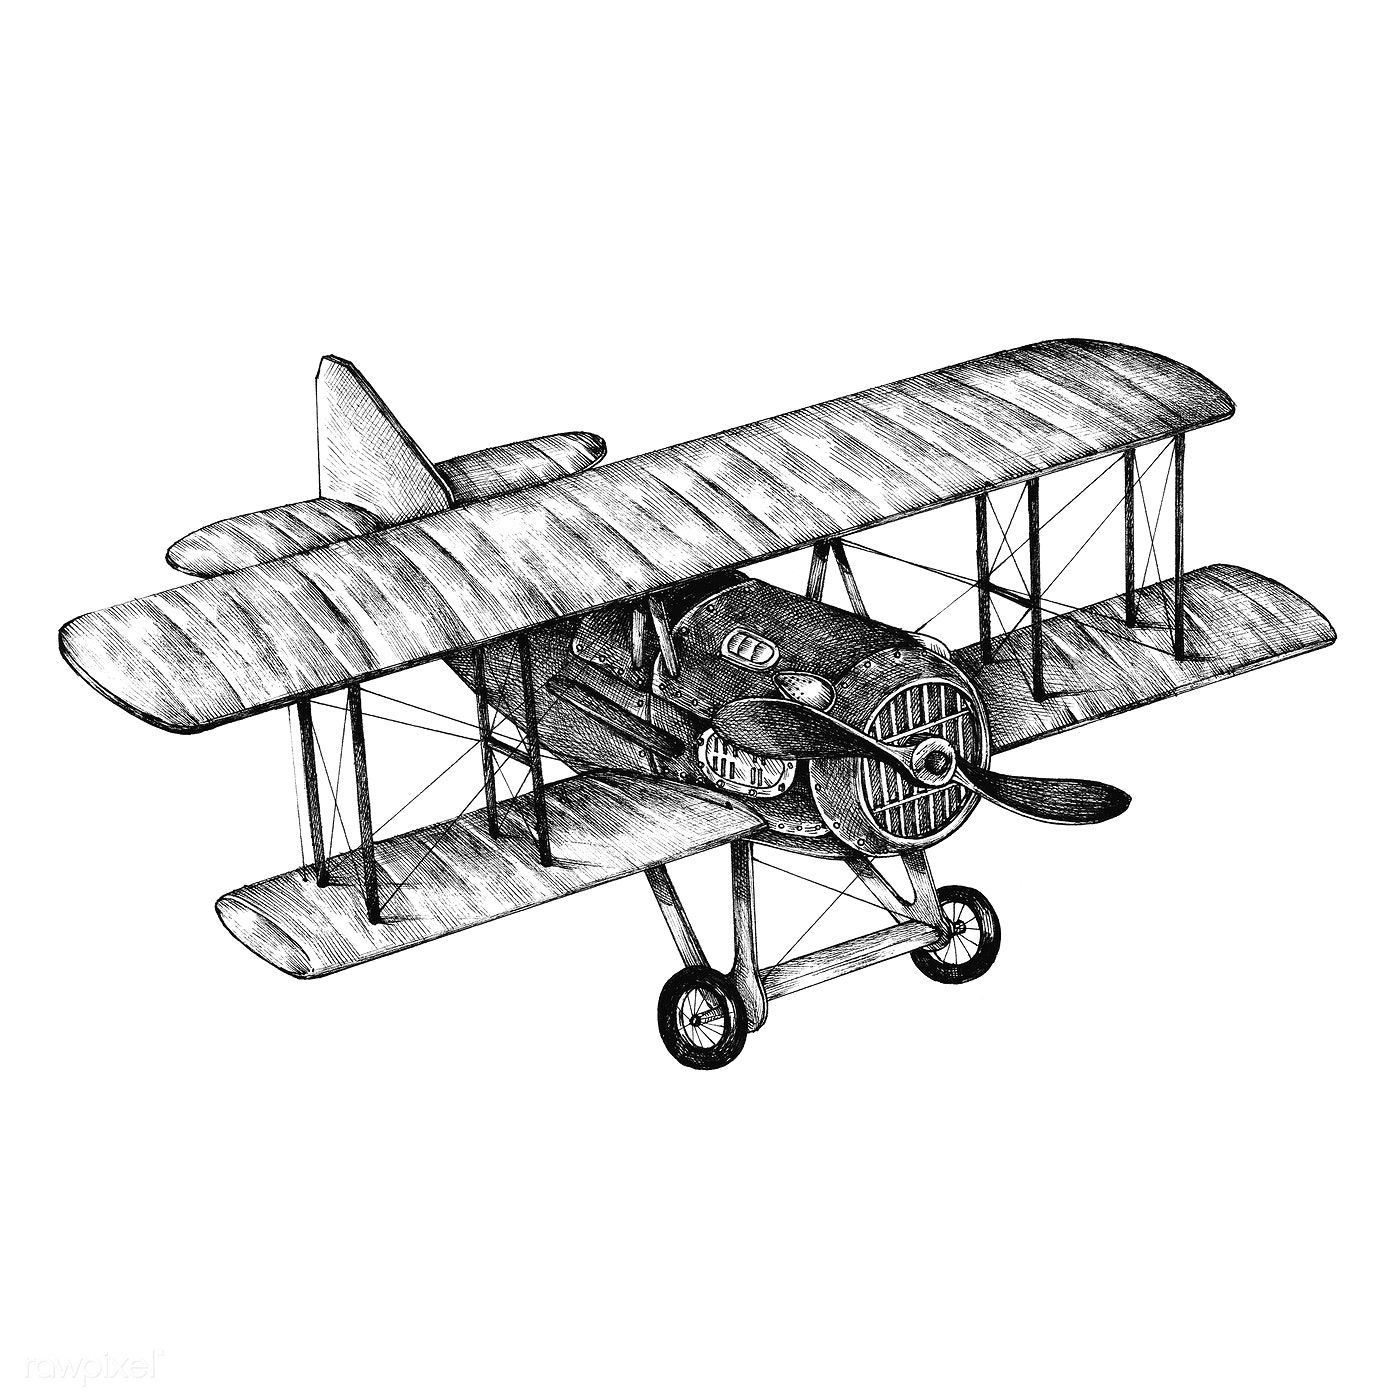 Hand Drawn Atr Plane Isolated On Backgrond Free Image By Rawpixel Com Vliegtuig